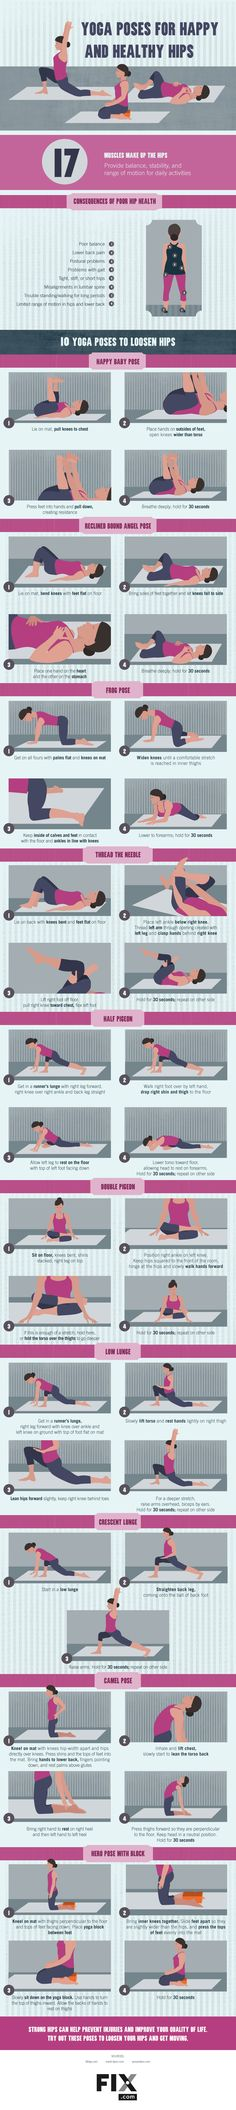 Yoga Poses for Happy and Healthy Hips #infographic